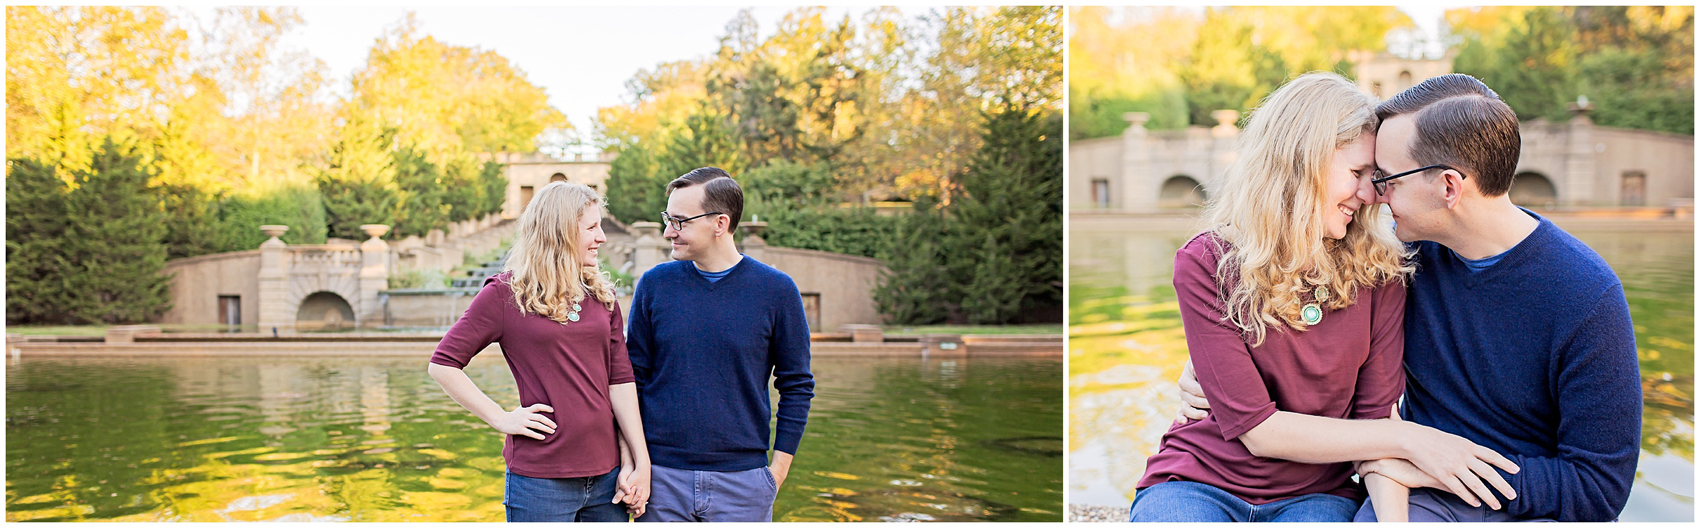 h-street-meridian-hill-washington-dc-engagement-photography-liz-stewart-photo-00005